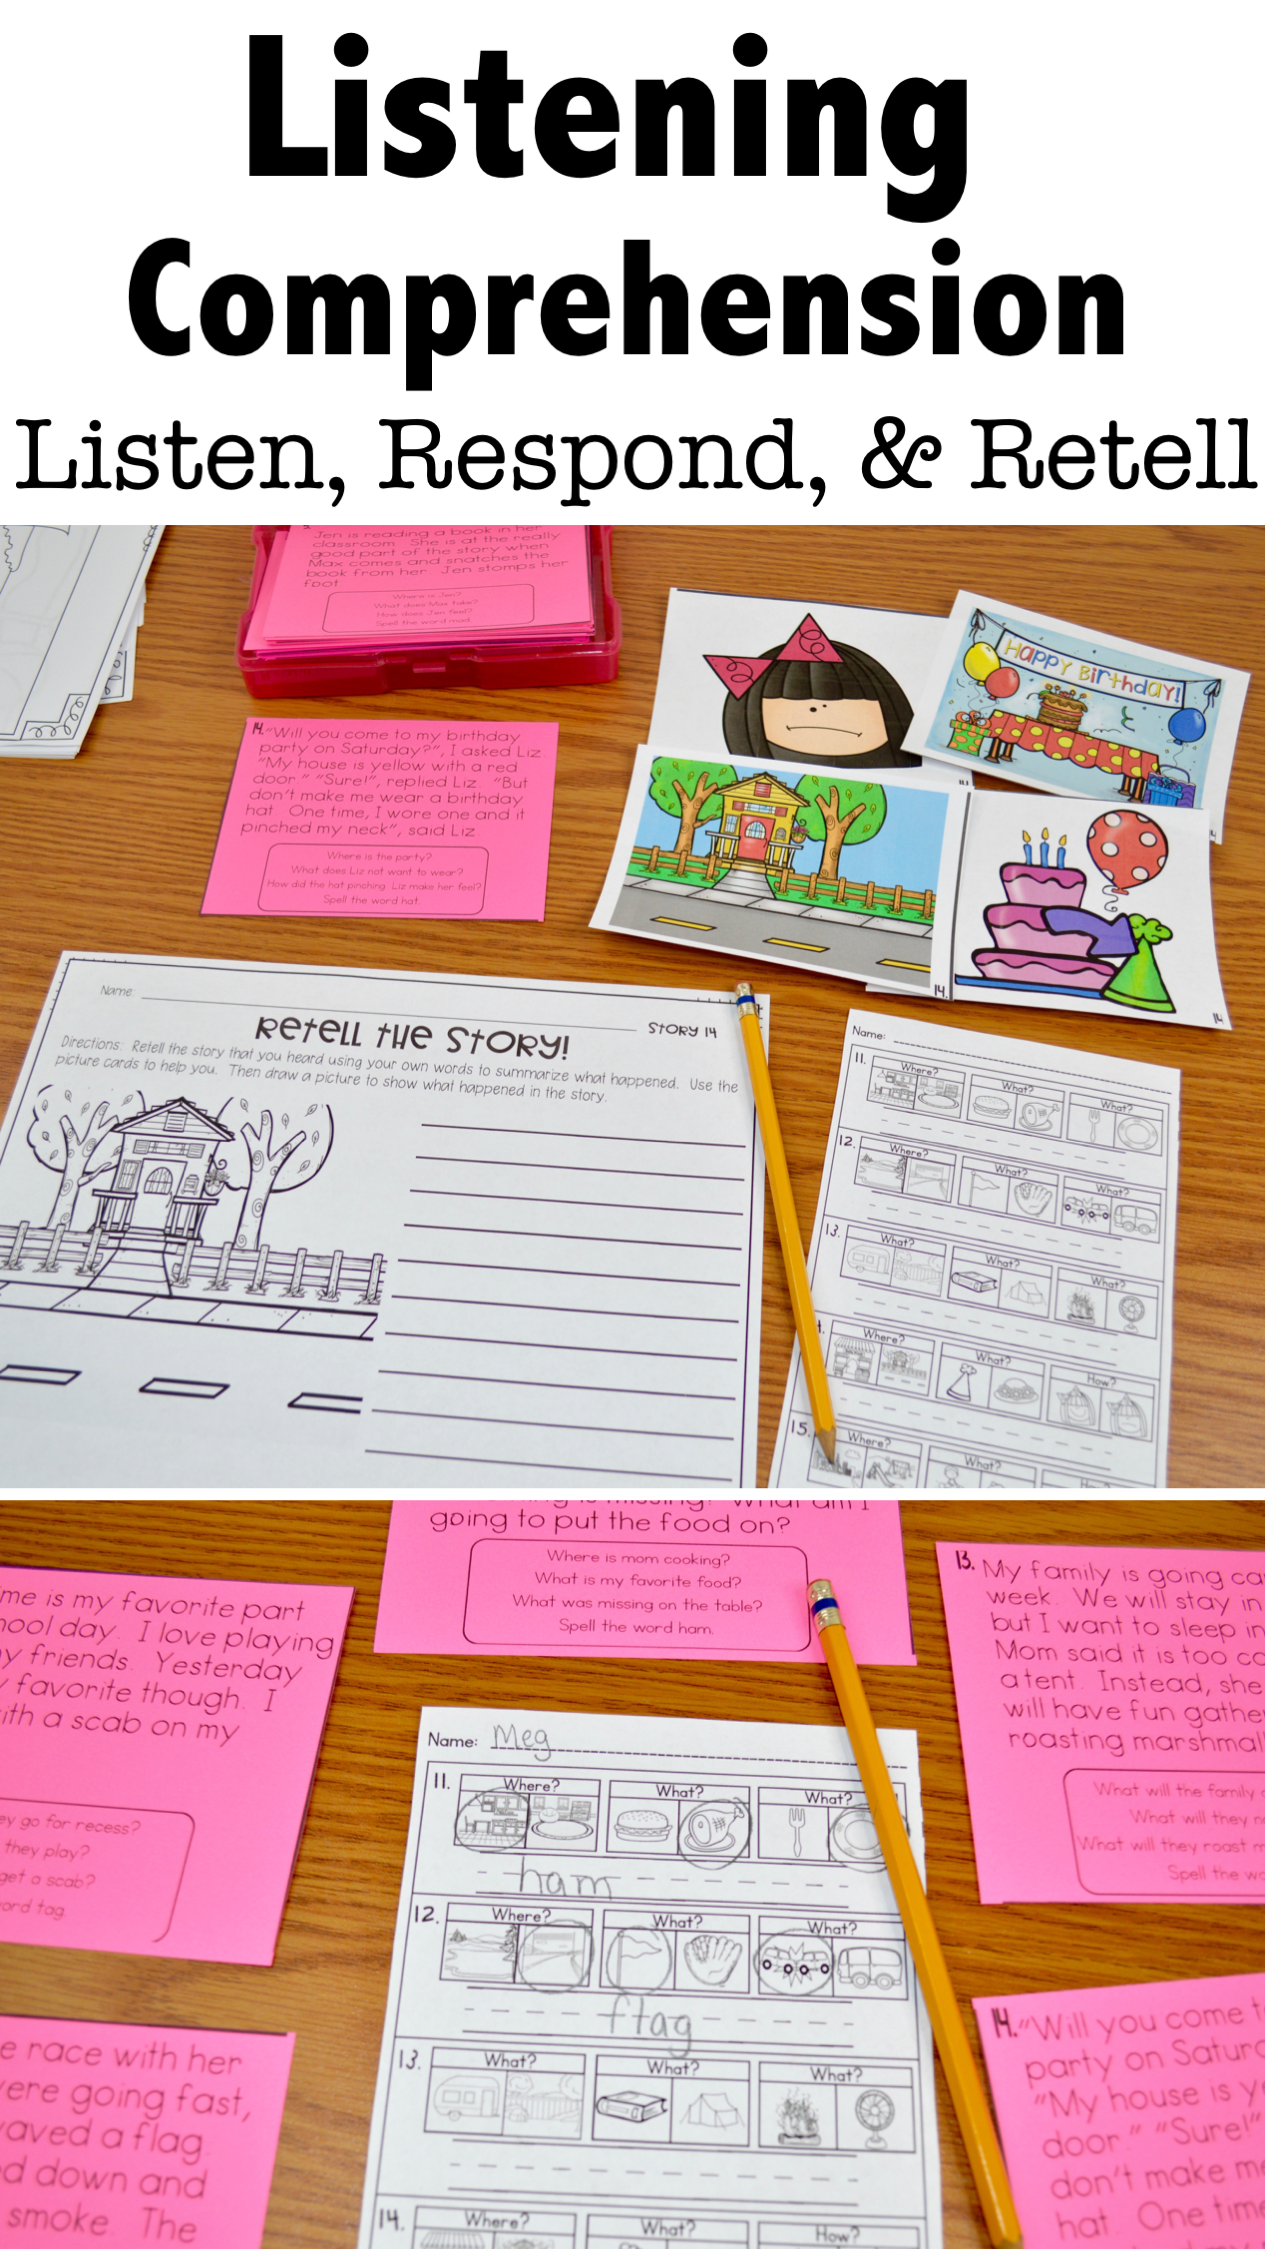 Listening Comprehension Activities For Elementary Students